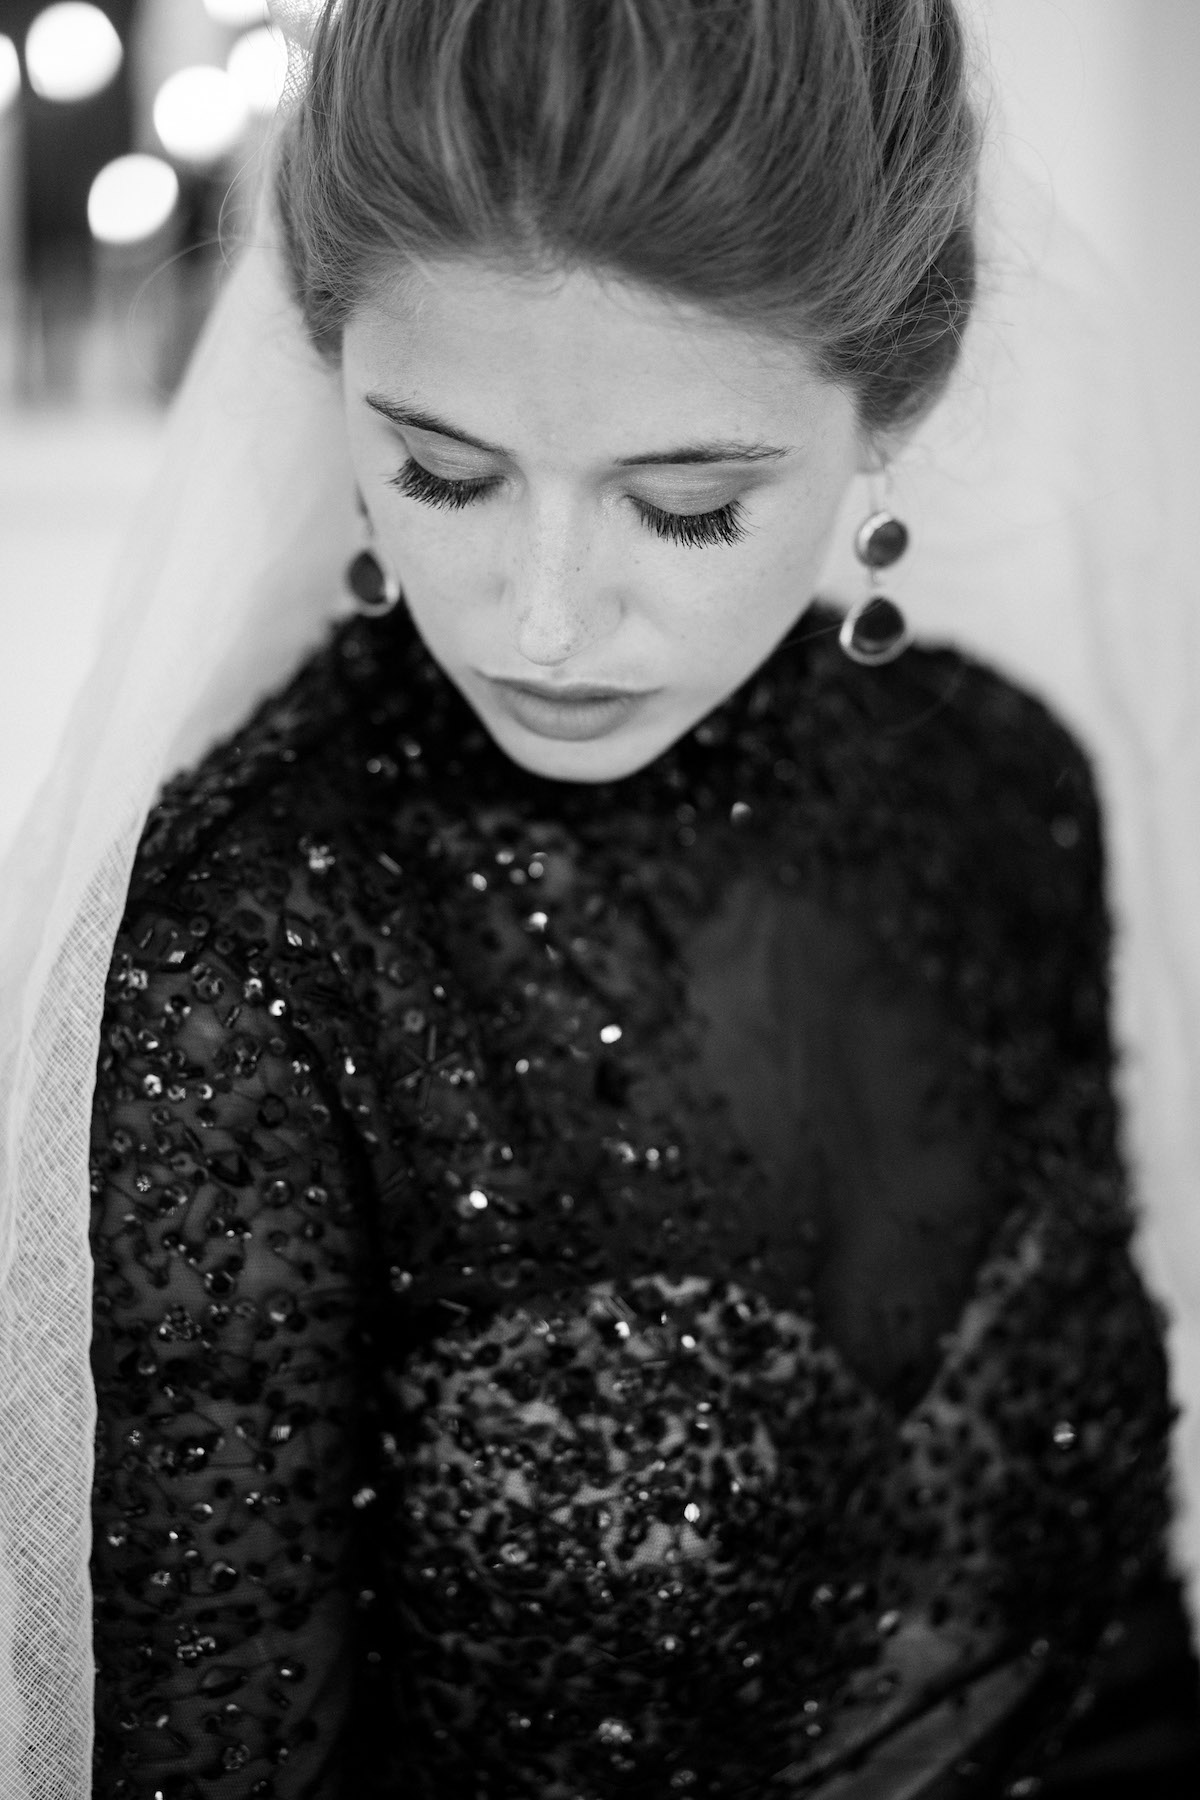 Wedding Style Shoots - dark and moody theme